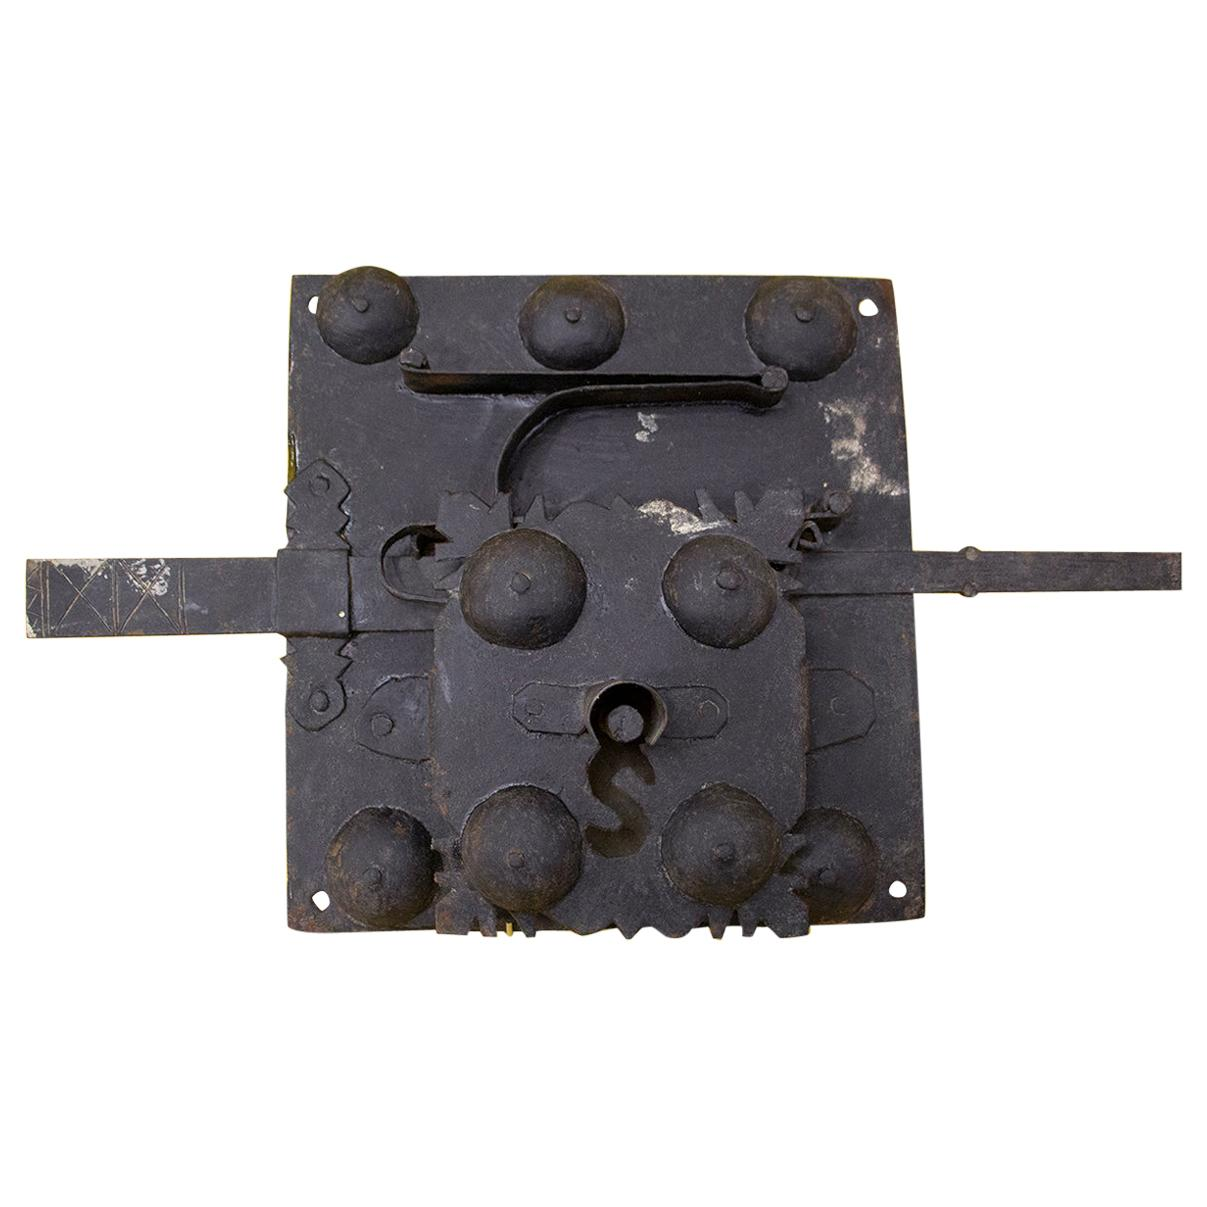 Important Lock in Sheet Steel from the 17th or 18th Century